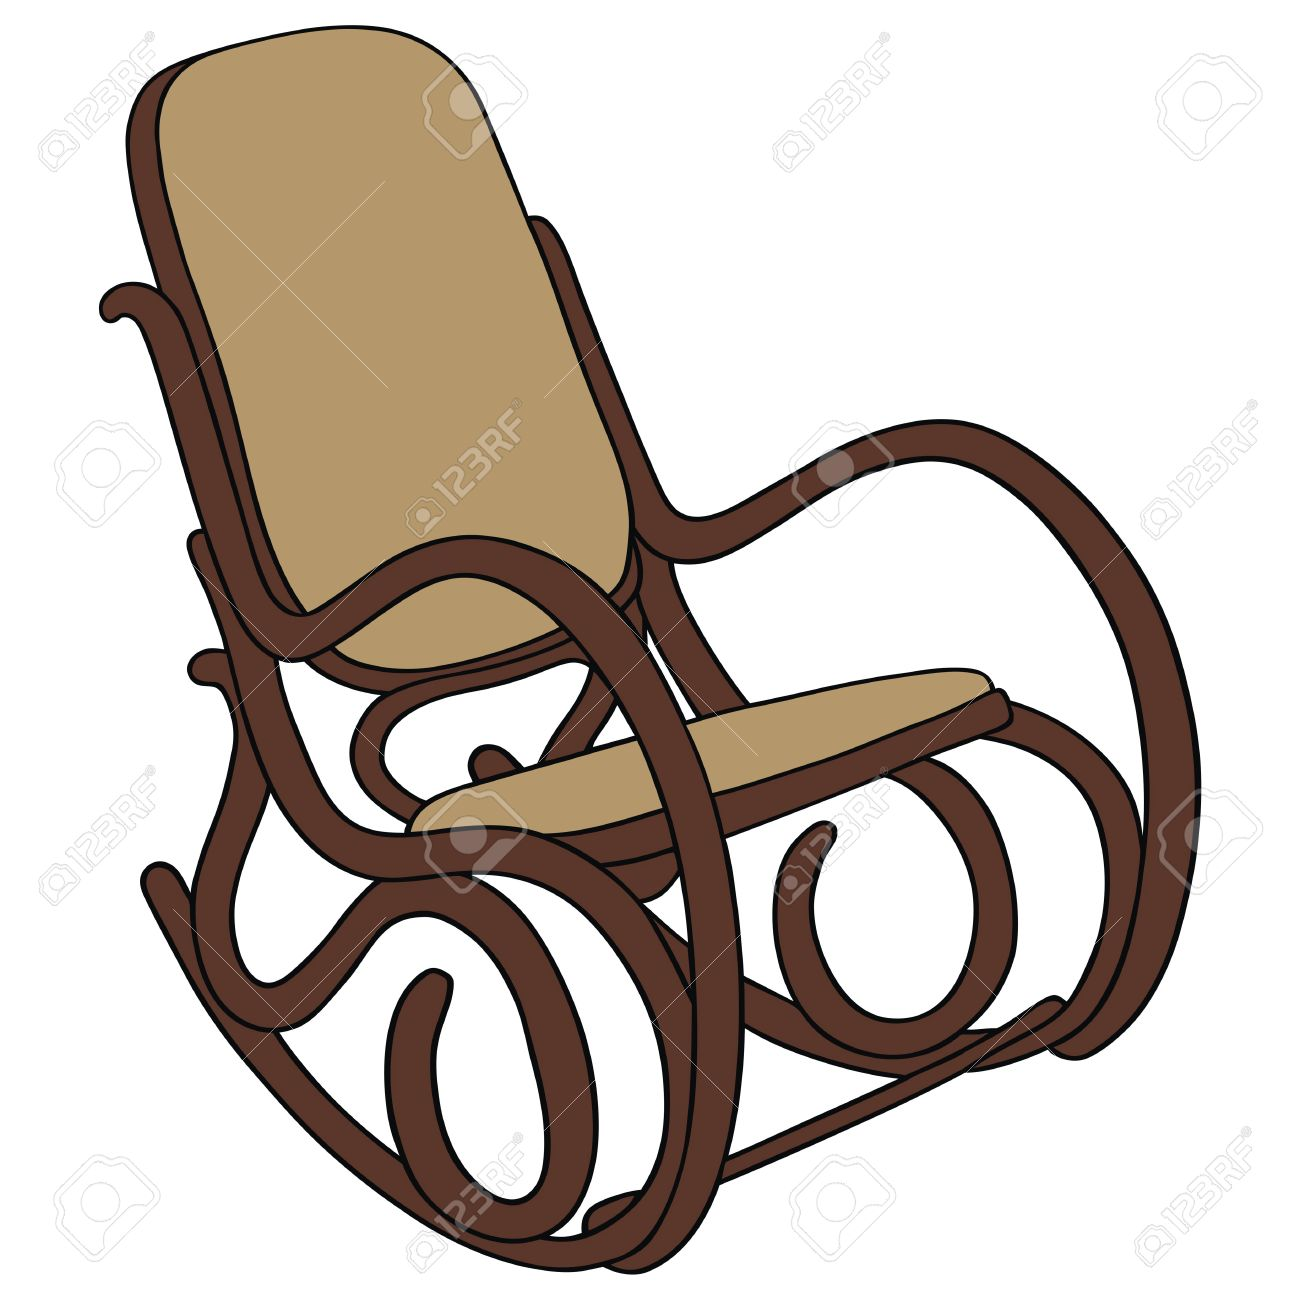 Hand Drawing Of Old Wooden Rocking Chair Stock Vector